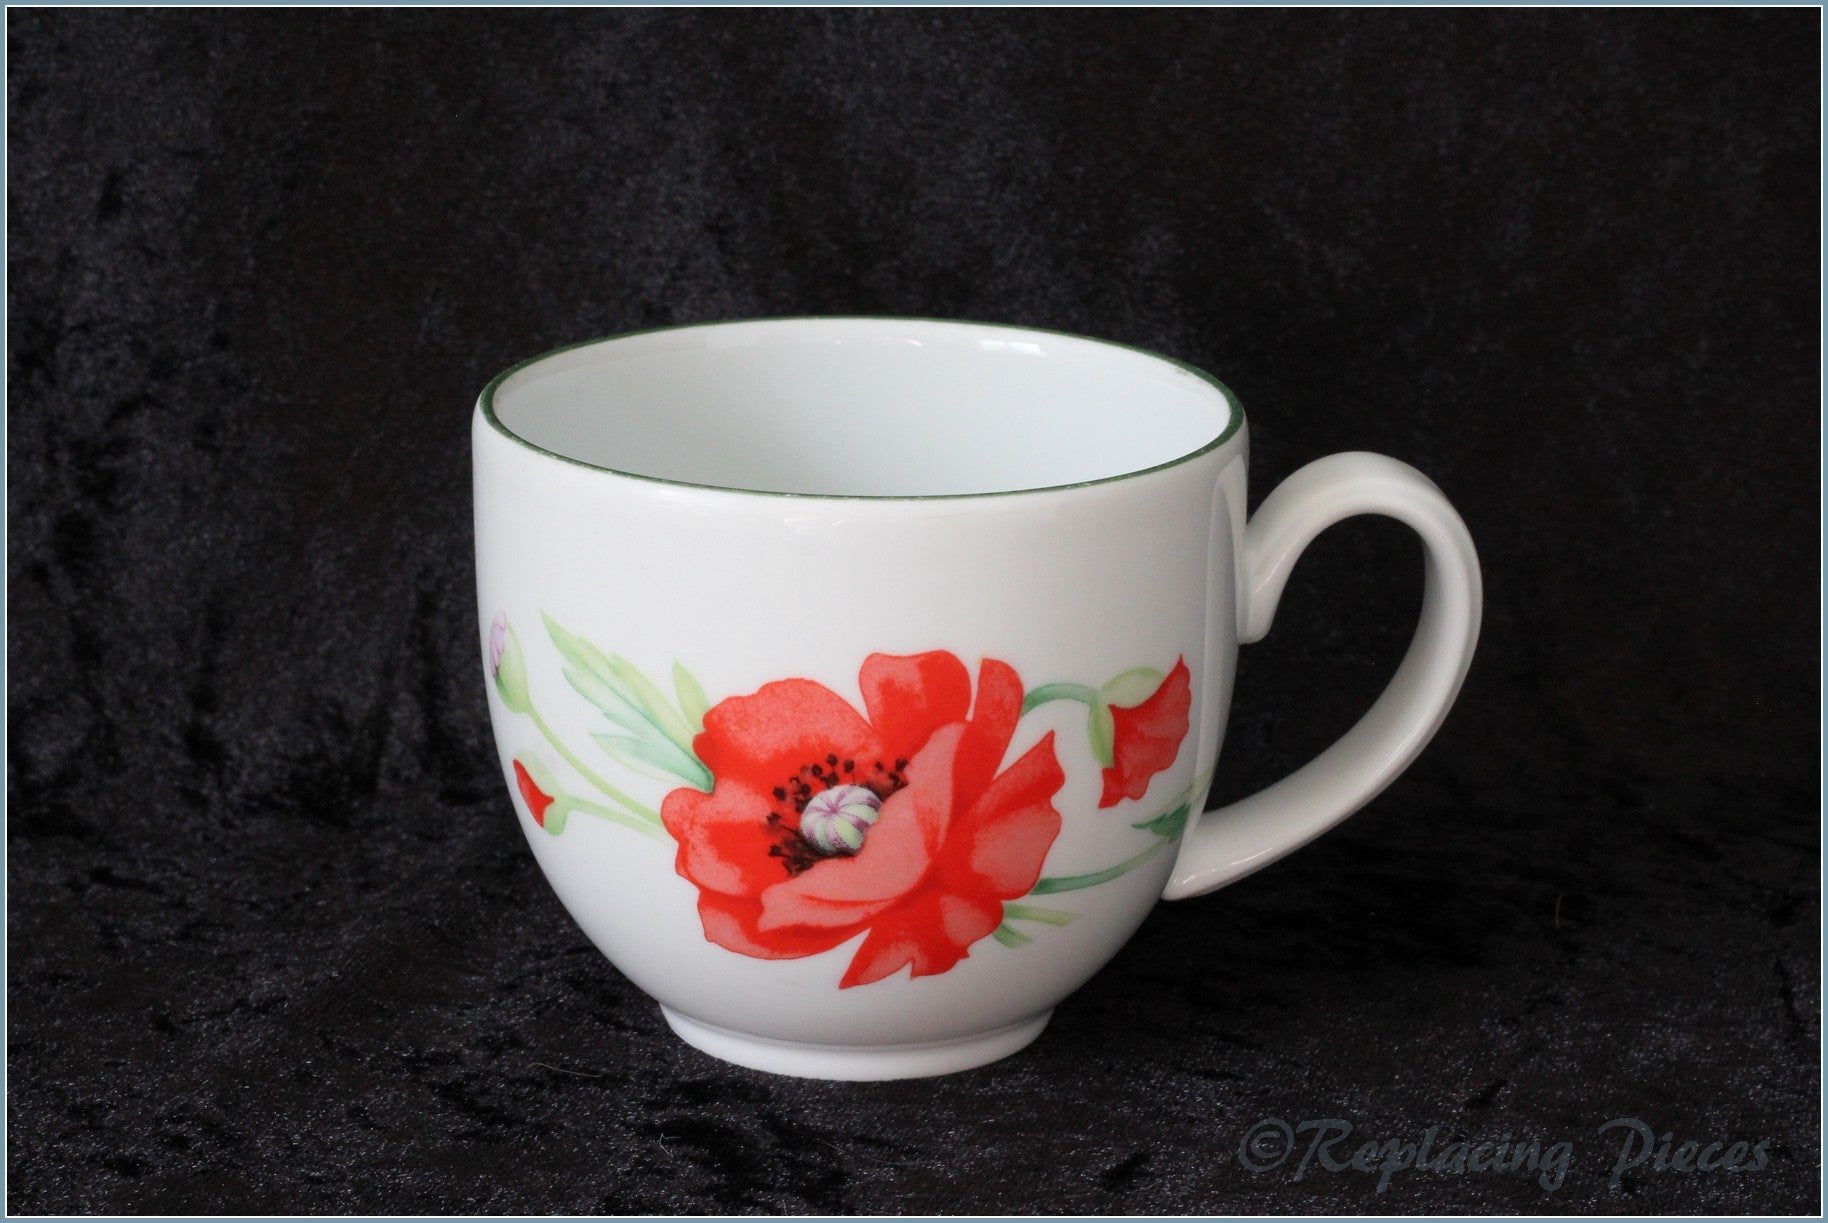 Royal Worcester - Poppies - Teacup